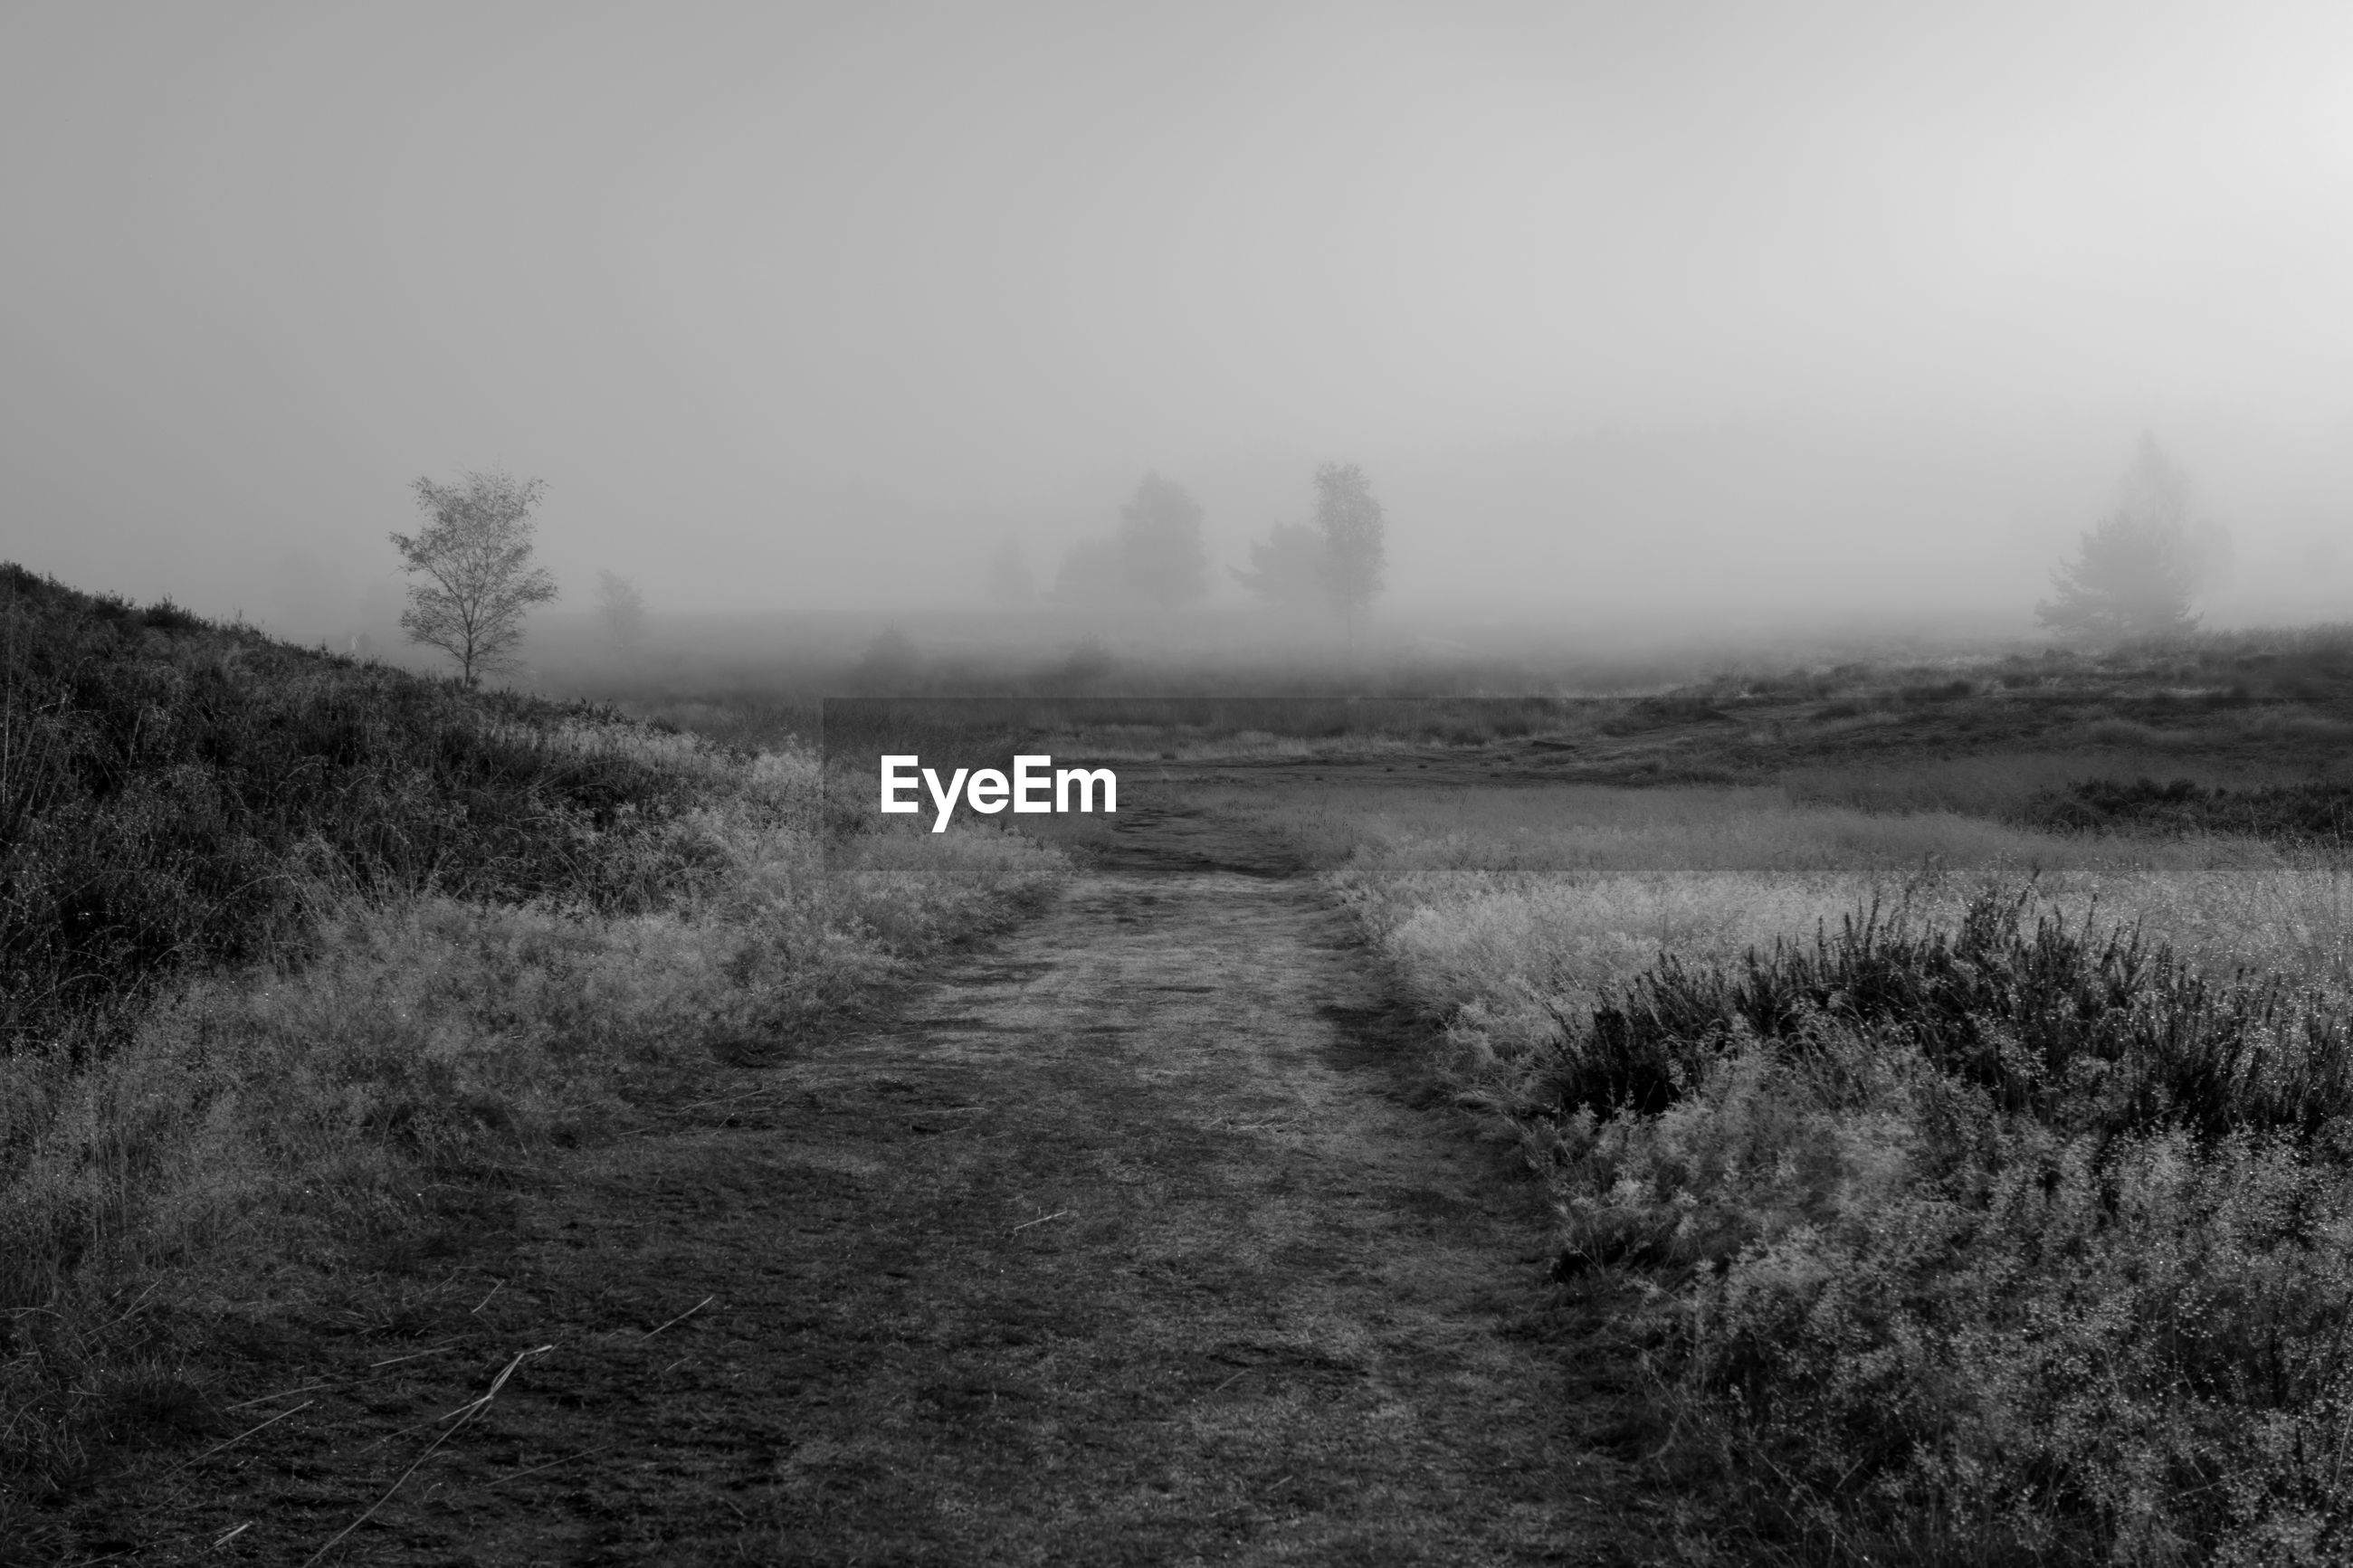 VIEW OF GRASSY LANDSCAPE IN FOGGY WEATHER